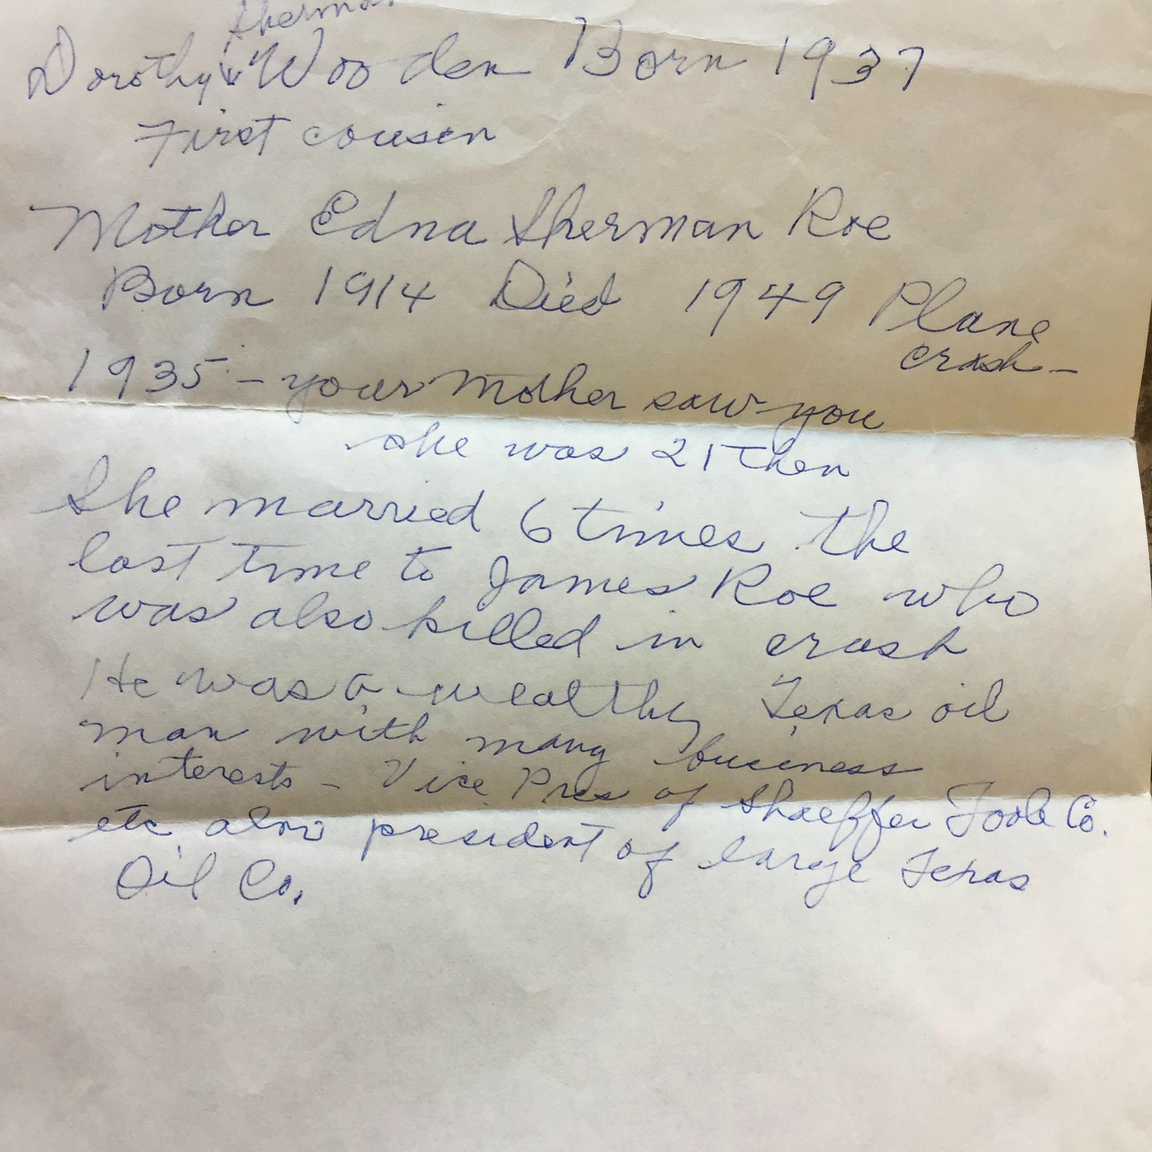 In 2011, reporter John D'Anna found this note in an envelope tucked among Sharon Elliott's trove of Hatbox Baby records. Sharon says the note is in her adoptive mother Faith Morrow's handwriting.